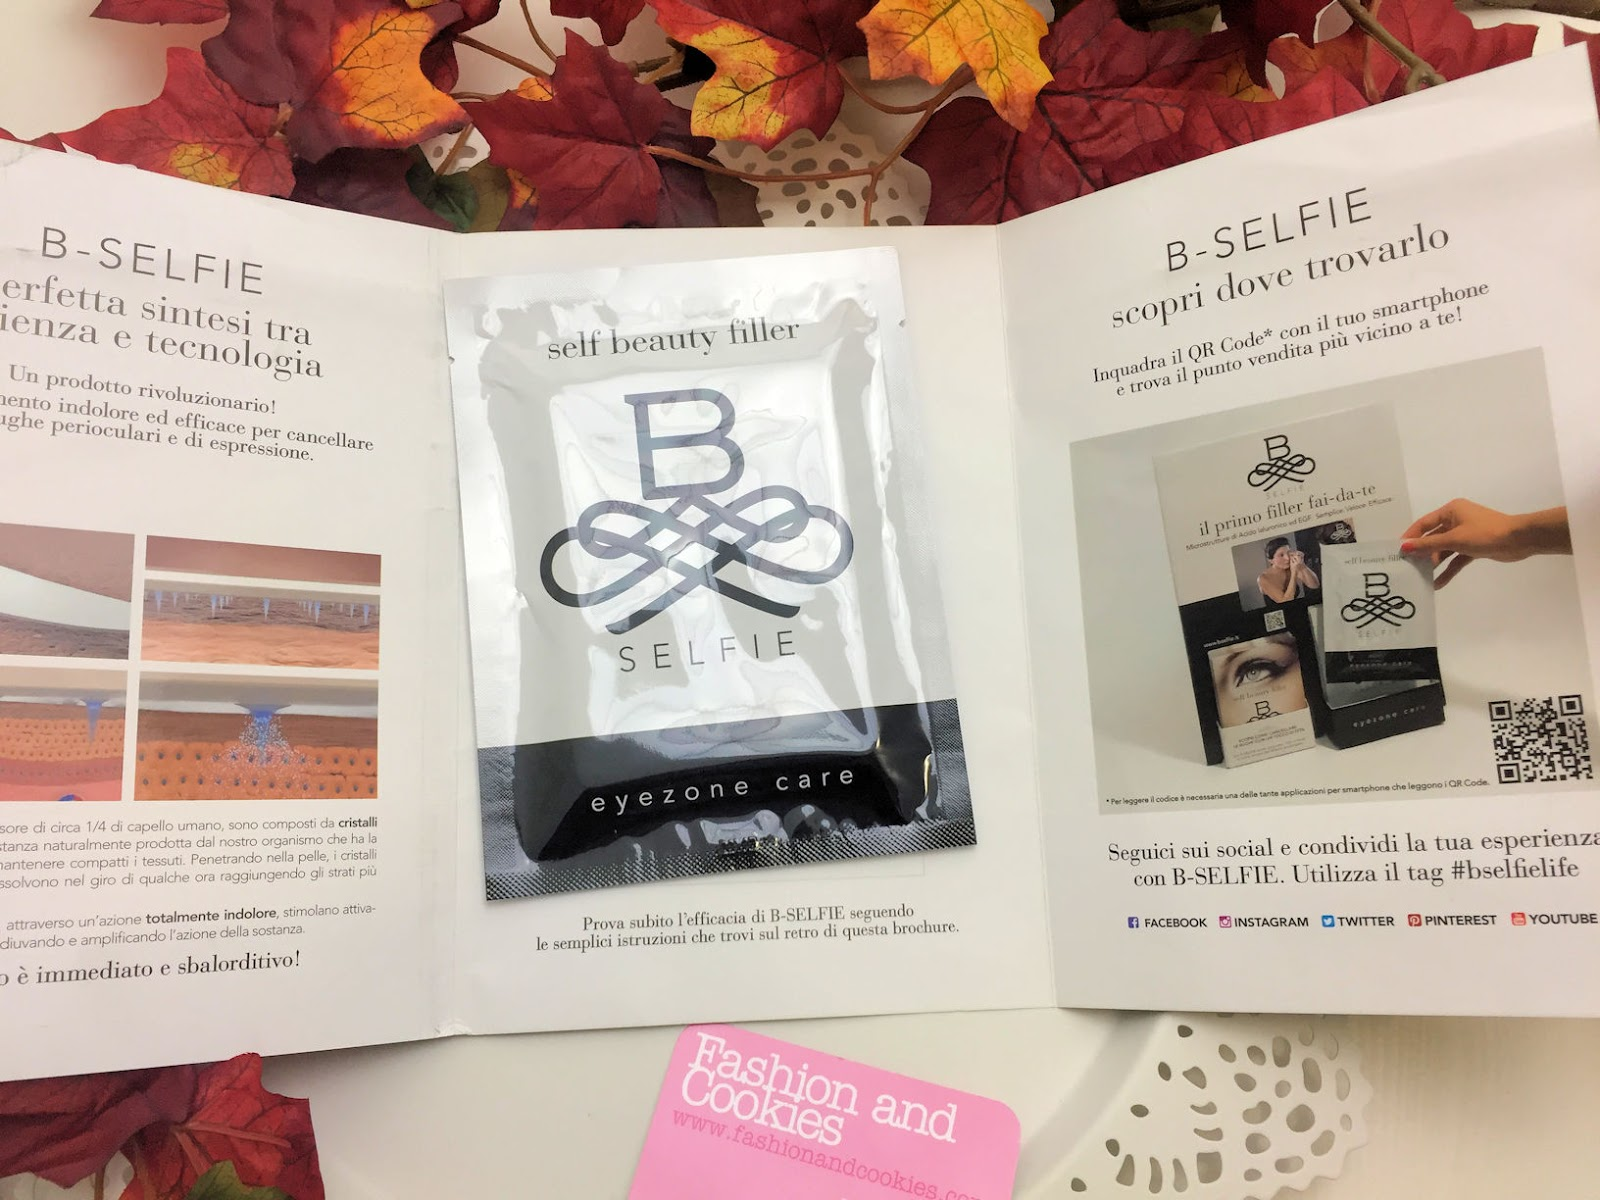 Filler contorno occhi senza aghi: B-Selfie su Fashion and Cookies beauty blog, beauty blogger